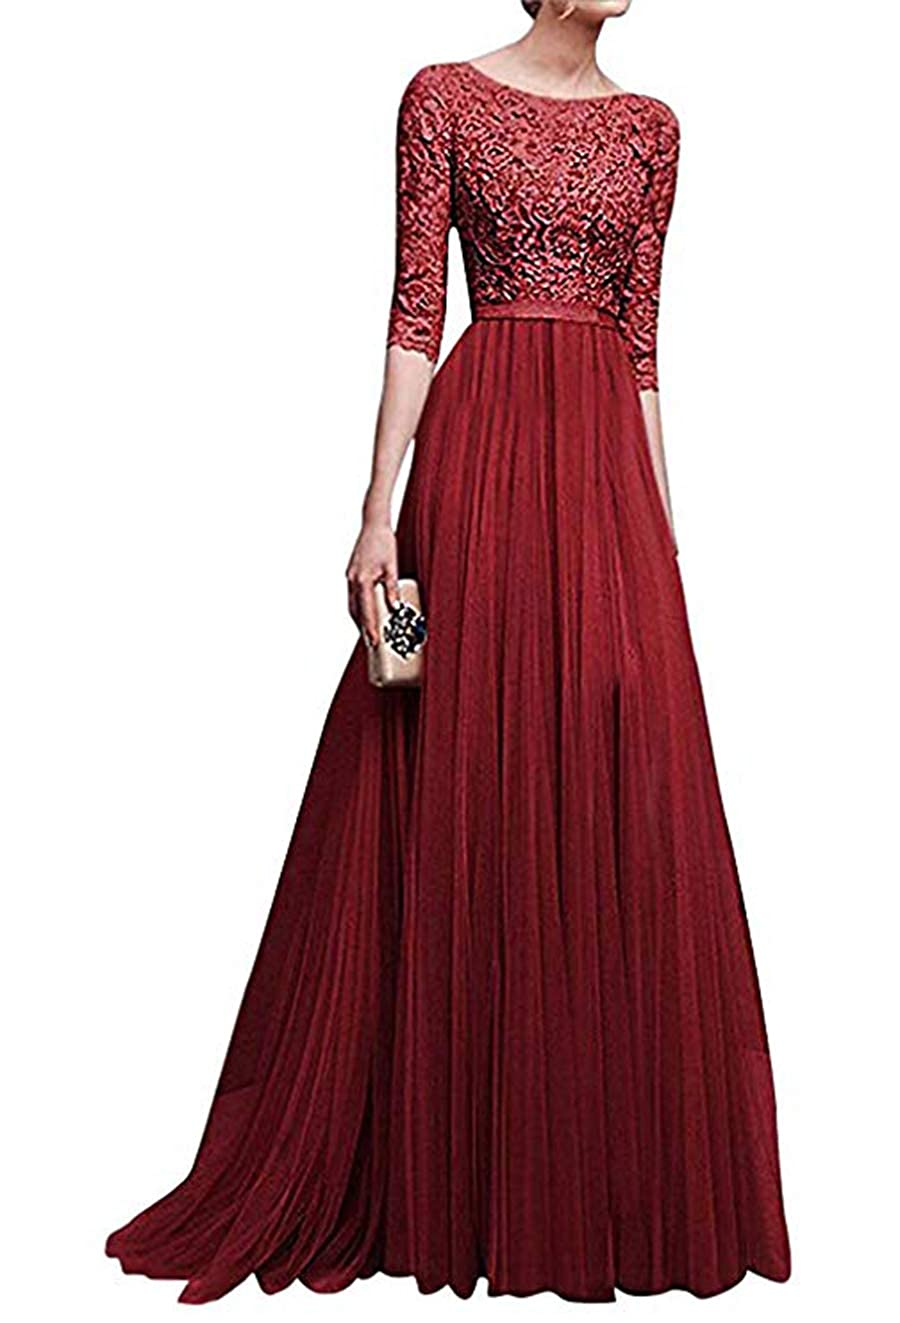 Romose Womens Maxi Dress 3//4 Sleeve Formal Special Occasion Long Dress Ball Gown Bride Wedding Dresses